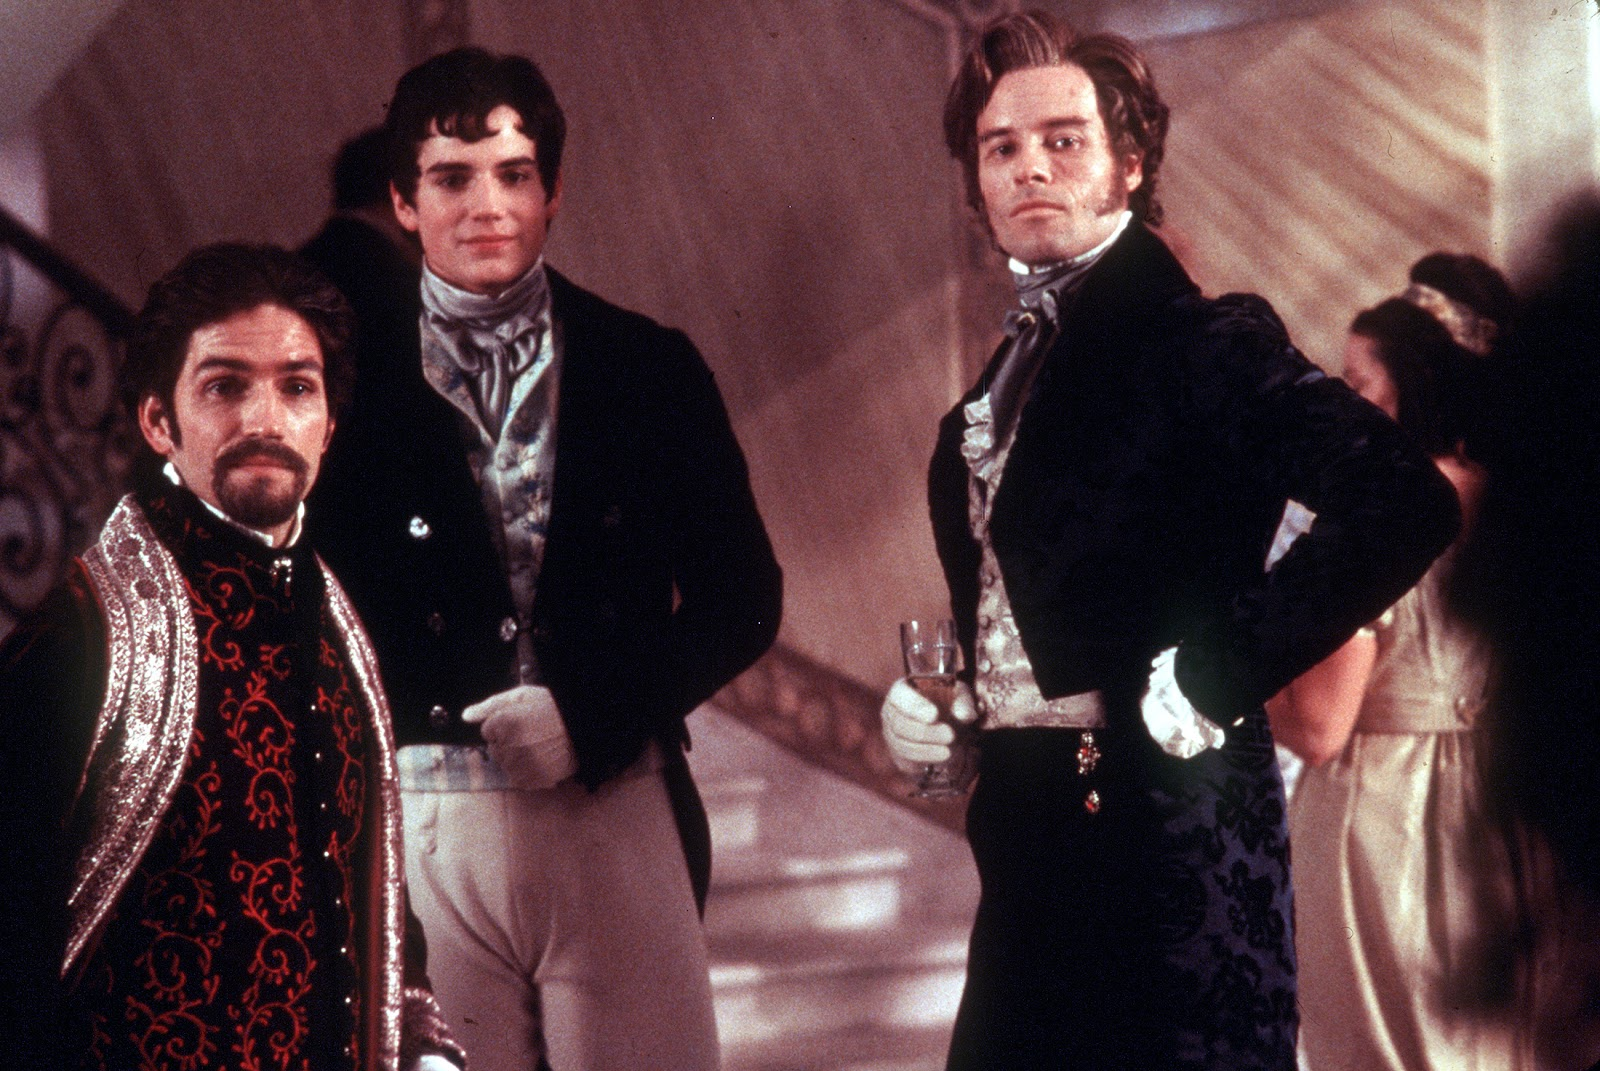 elegance of fashion review the count of monte cristo left to right edmond as the count of monte cristo albert mondego and fernand mondego